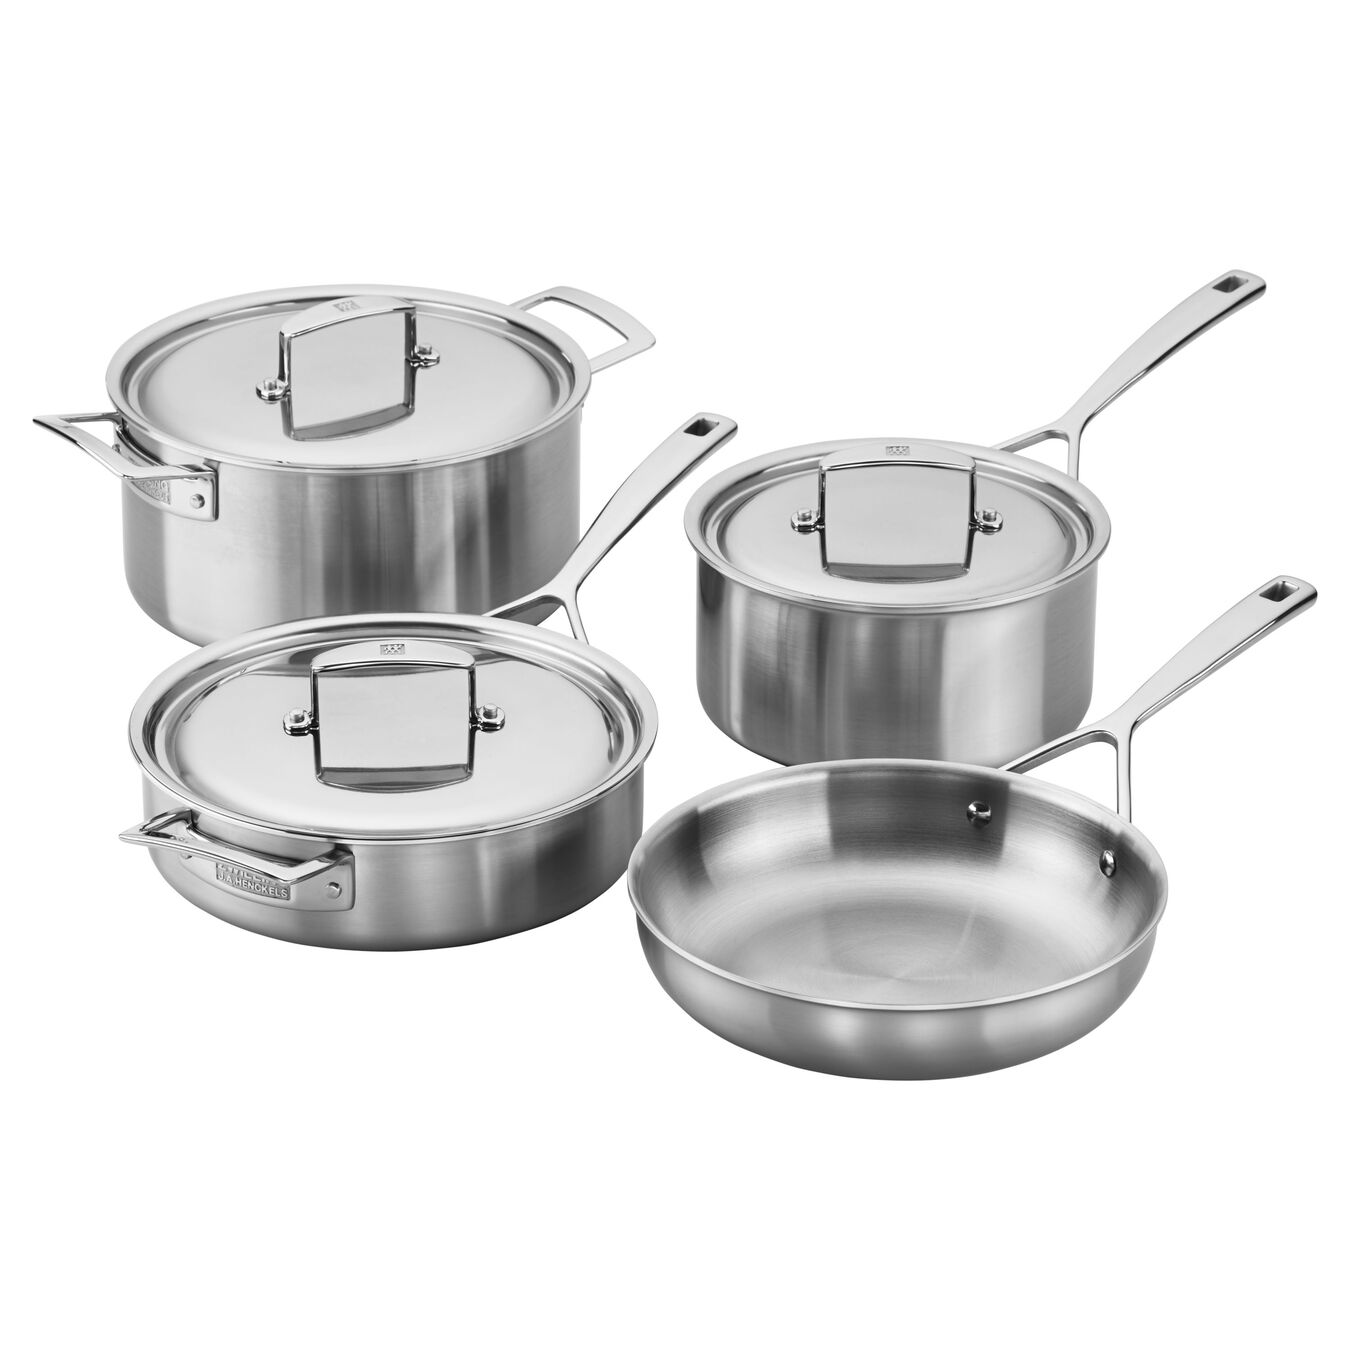 Stainless Steel 7-Piece Cookware Set,,large 1